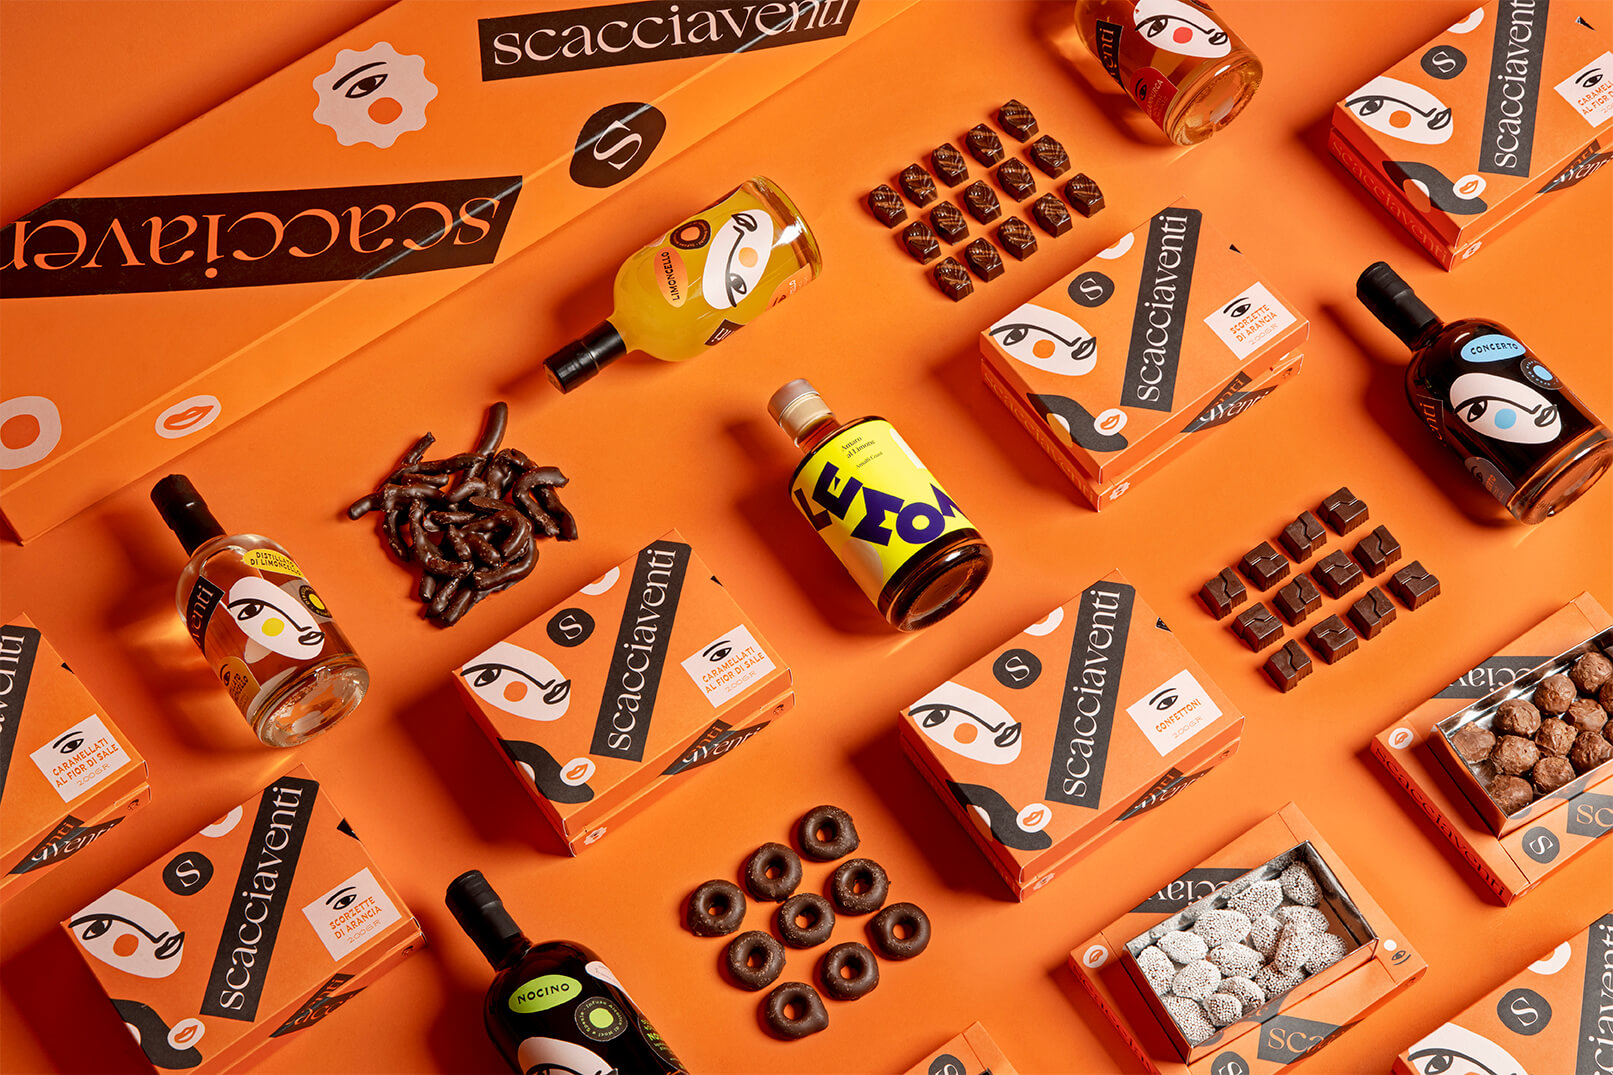 Scacciaventi Packaging Design for Confectionery, Liquors and Spirits by Lettera7